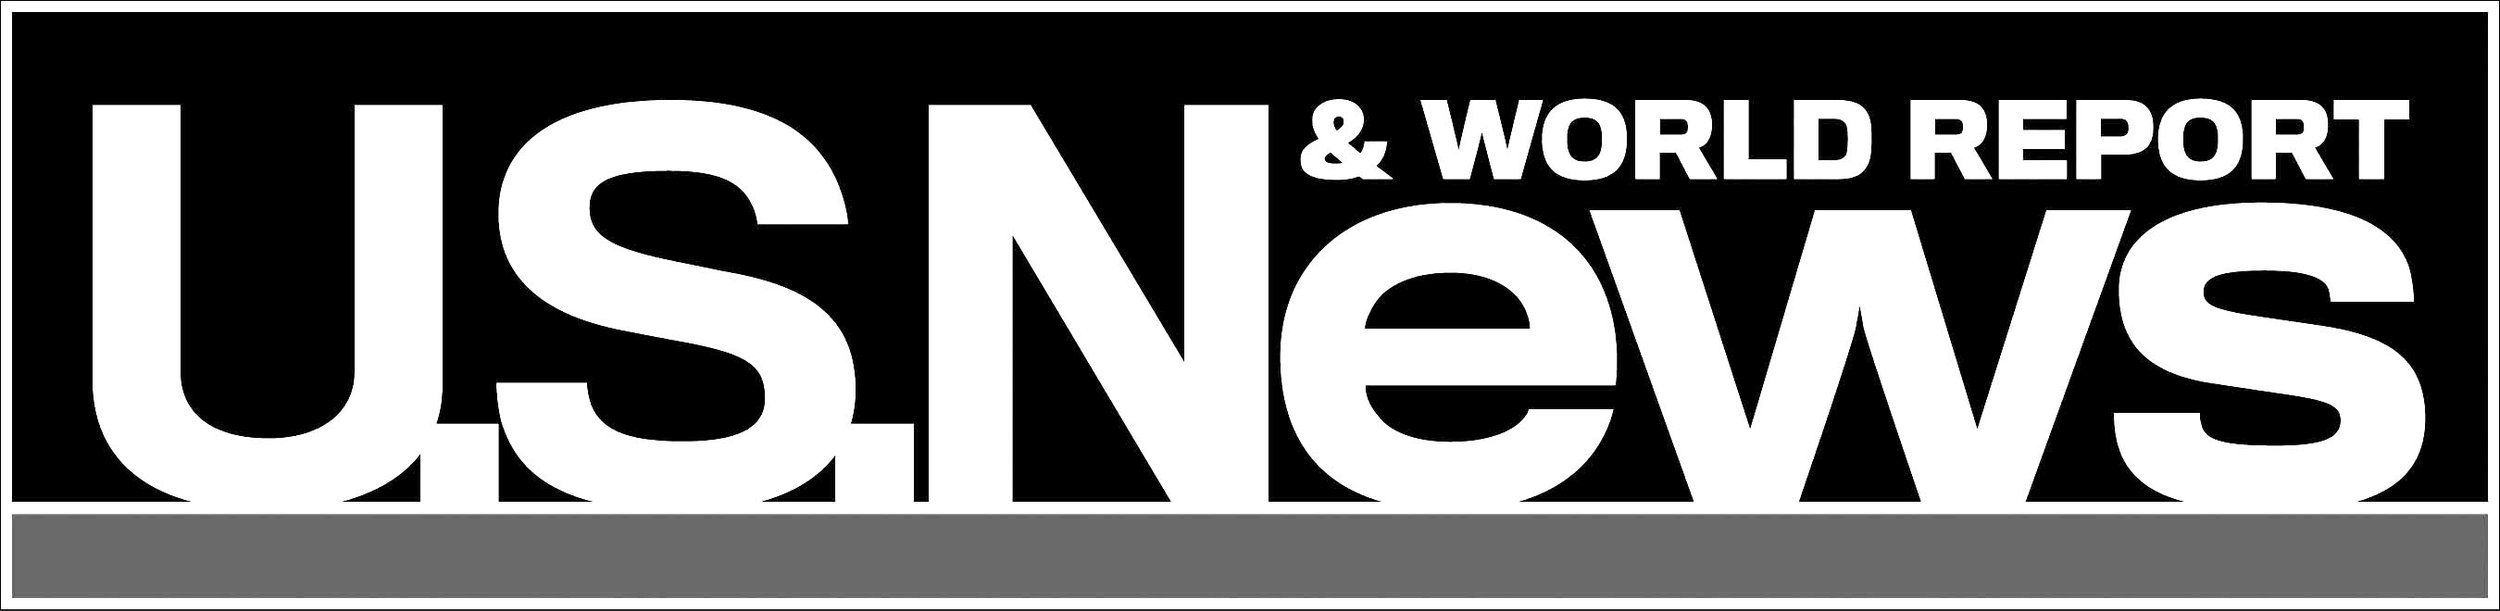 US-News-World-Report-logo.jpg